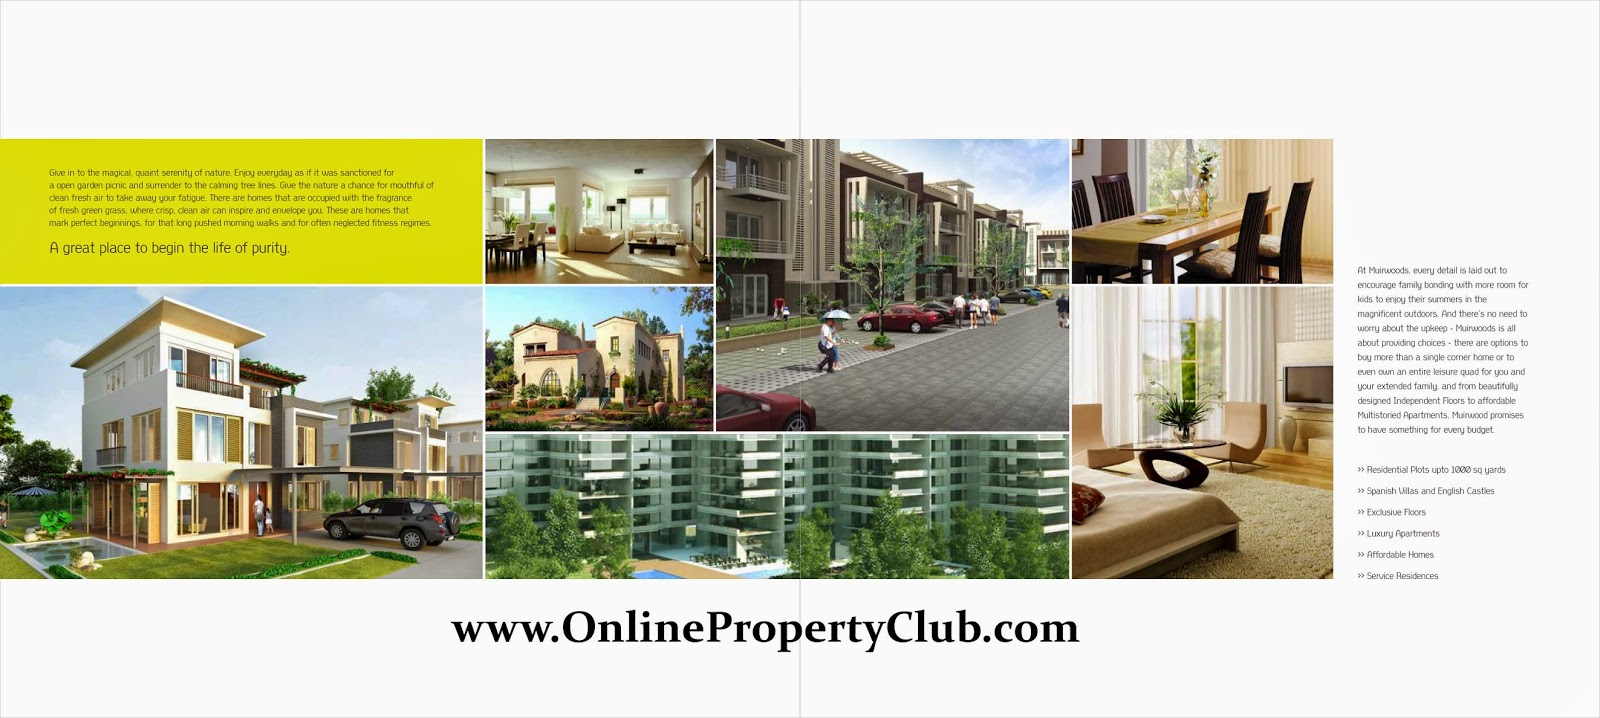 Altus Space Builders Pvt Ltd | Mullanpur Muirwoods New-Chandigarh | Plots | EcoGlades Flats | altus in mullanpur |  altus plots in mullanpur | Altus Flats in Mullanpur, | altus 3bhk flats mullanpur | altus 4bhk in mullanpur | property in mullanpur